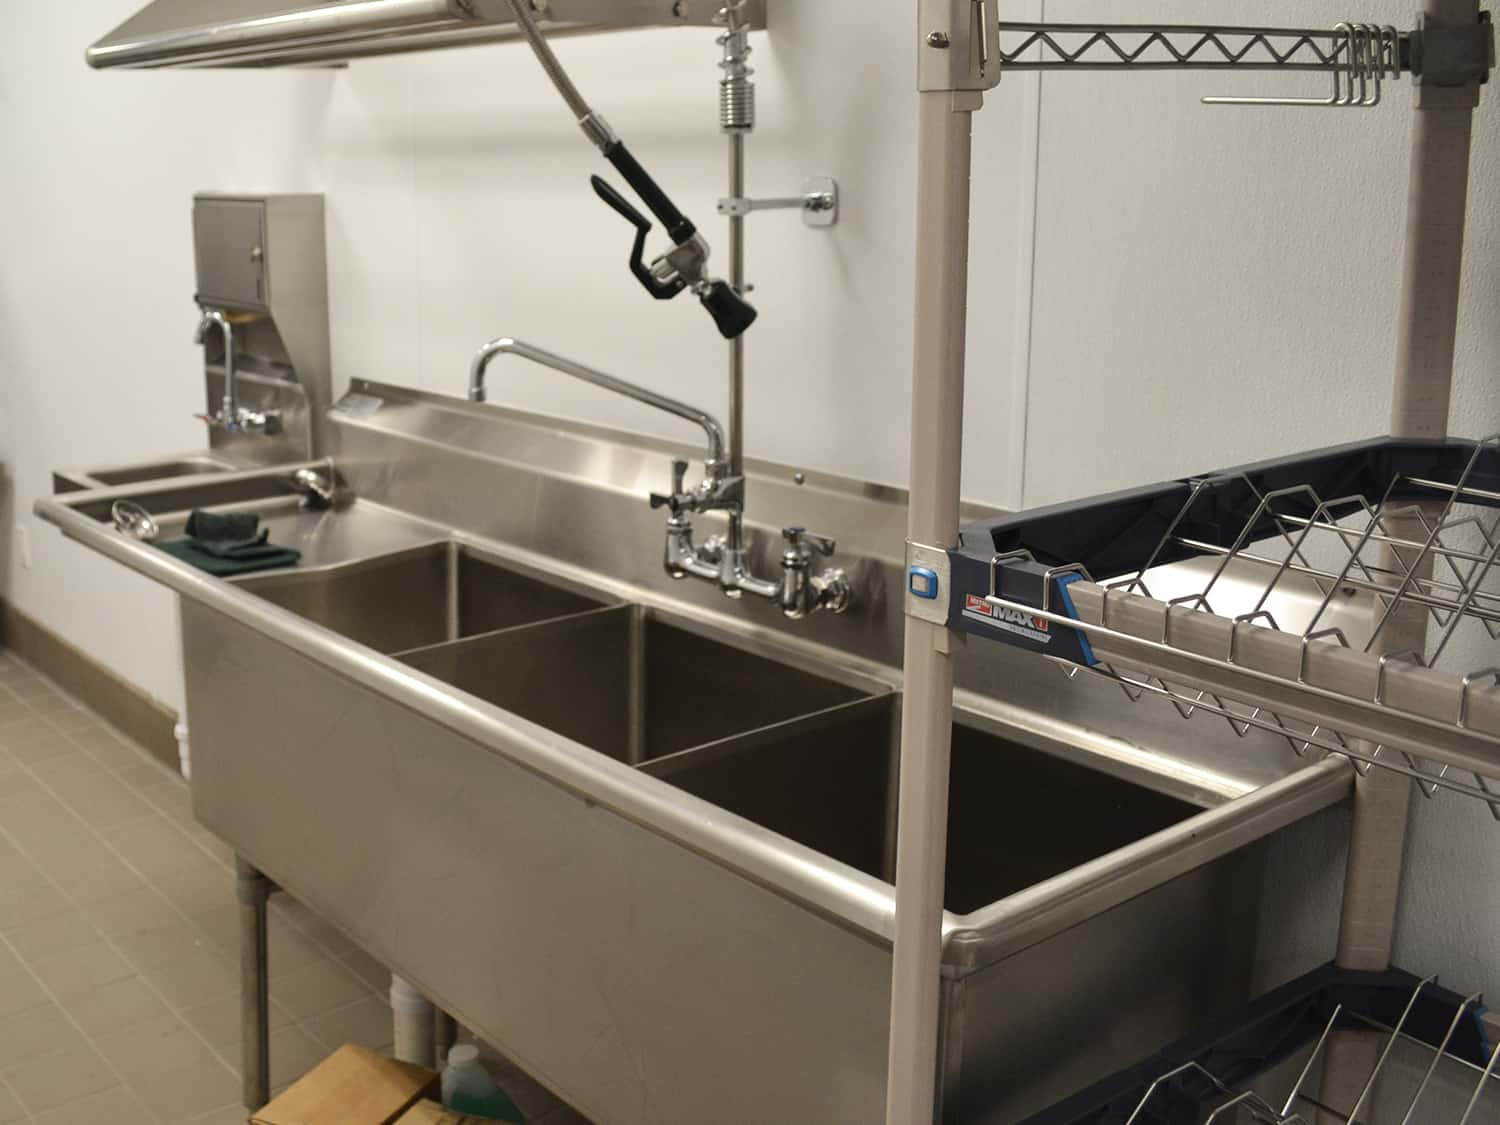 Sink Three Compartment Ryders